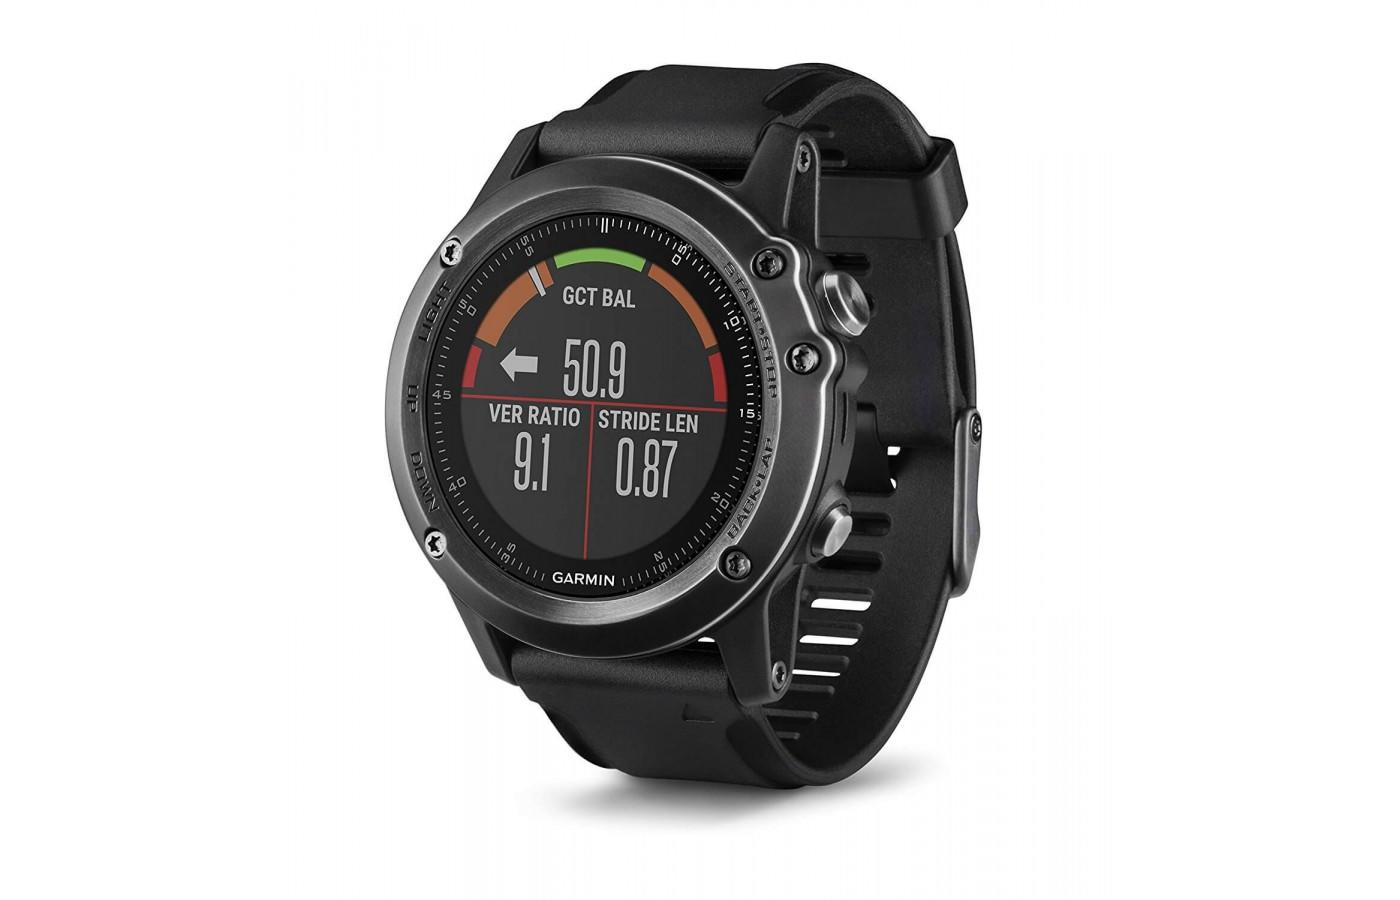 The Fenix 3 Sapphire will track a variety of activities